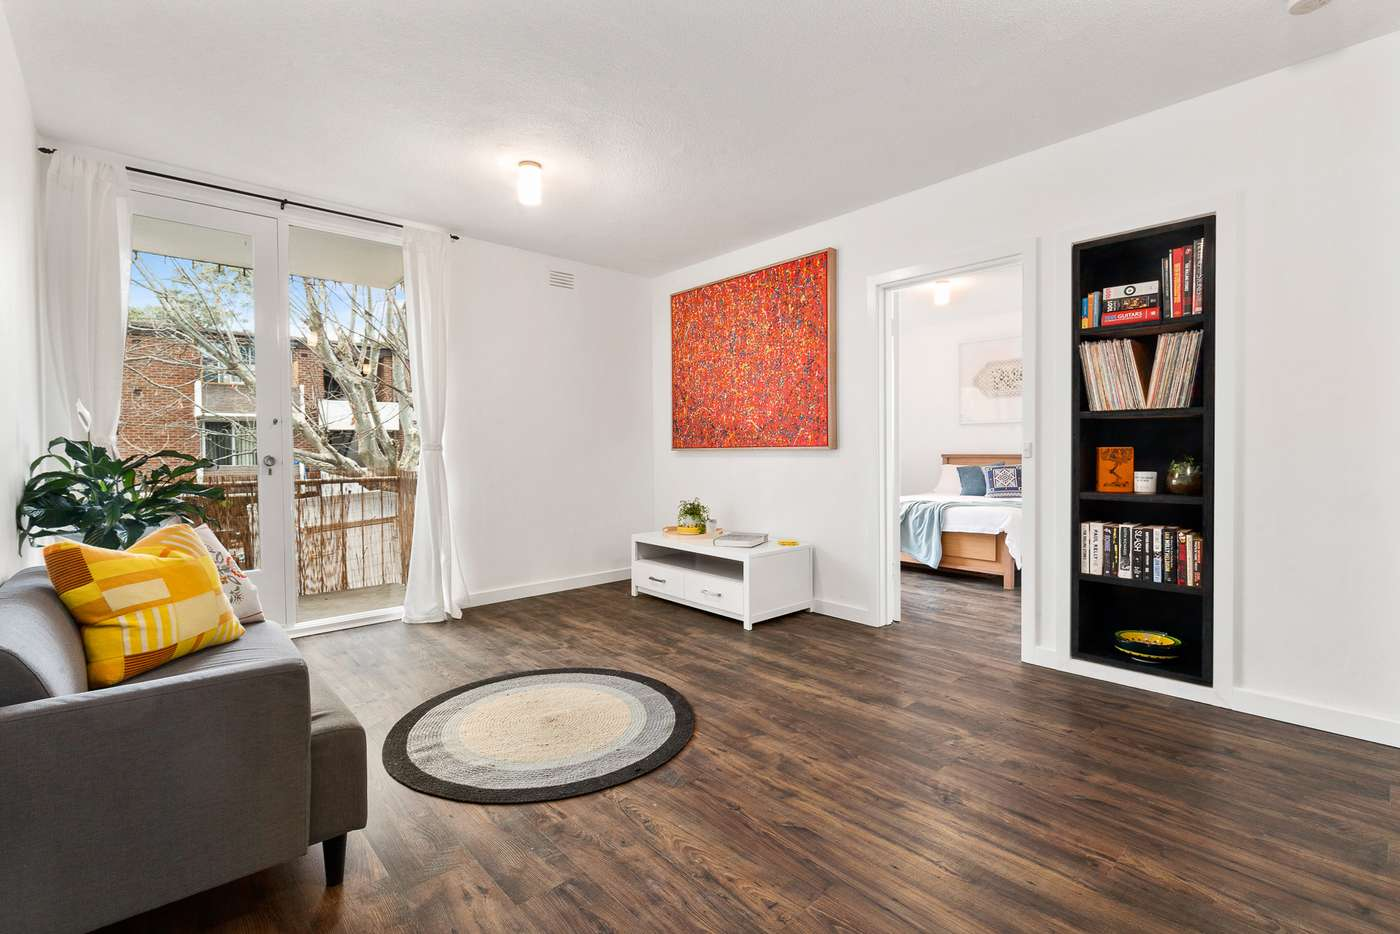 Main view of Homely apartment listing, 19/49 Haines Street, North Melbourne VIC 3051